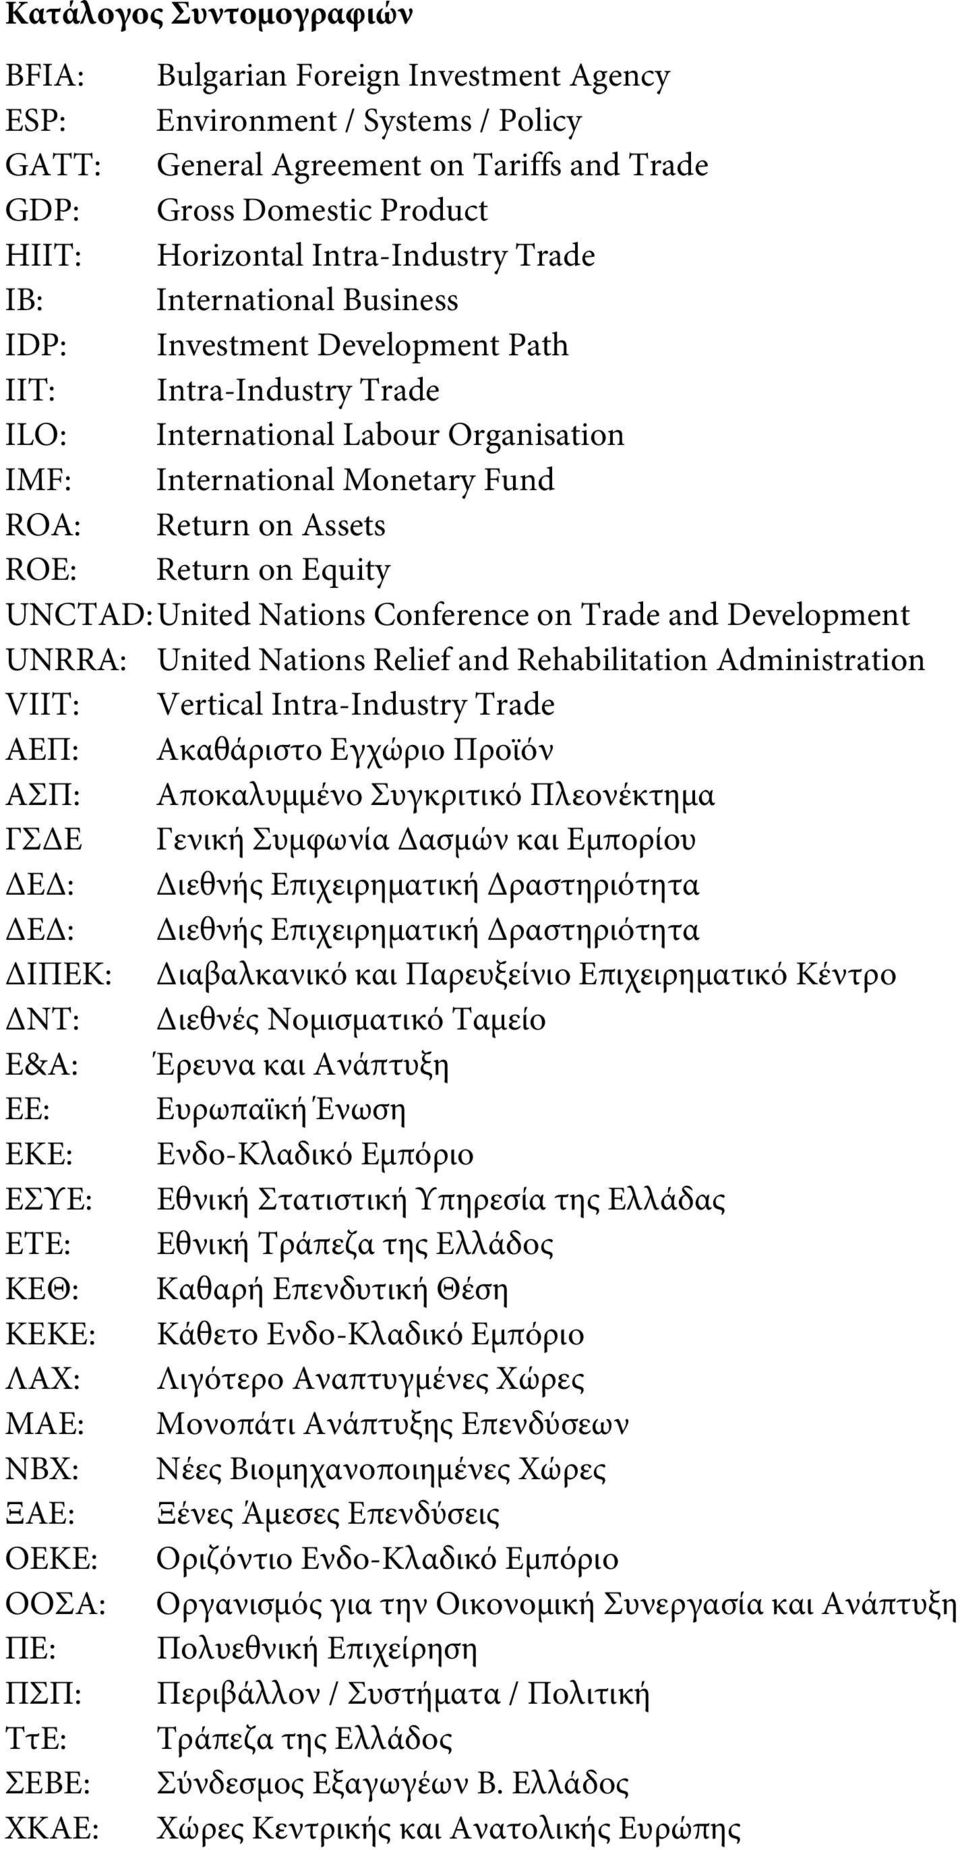 Assets ROE: Return on Equity UNCTAD: United Nations Conference on Trade and Development UNRRA: United Nations Relief and Rehabilitation Administration VIIT: Vertical Intra-Industry Trade ΑΕΠ: